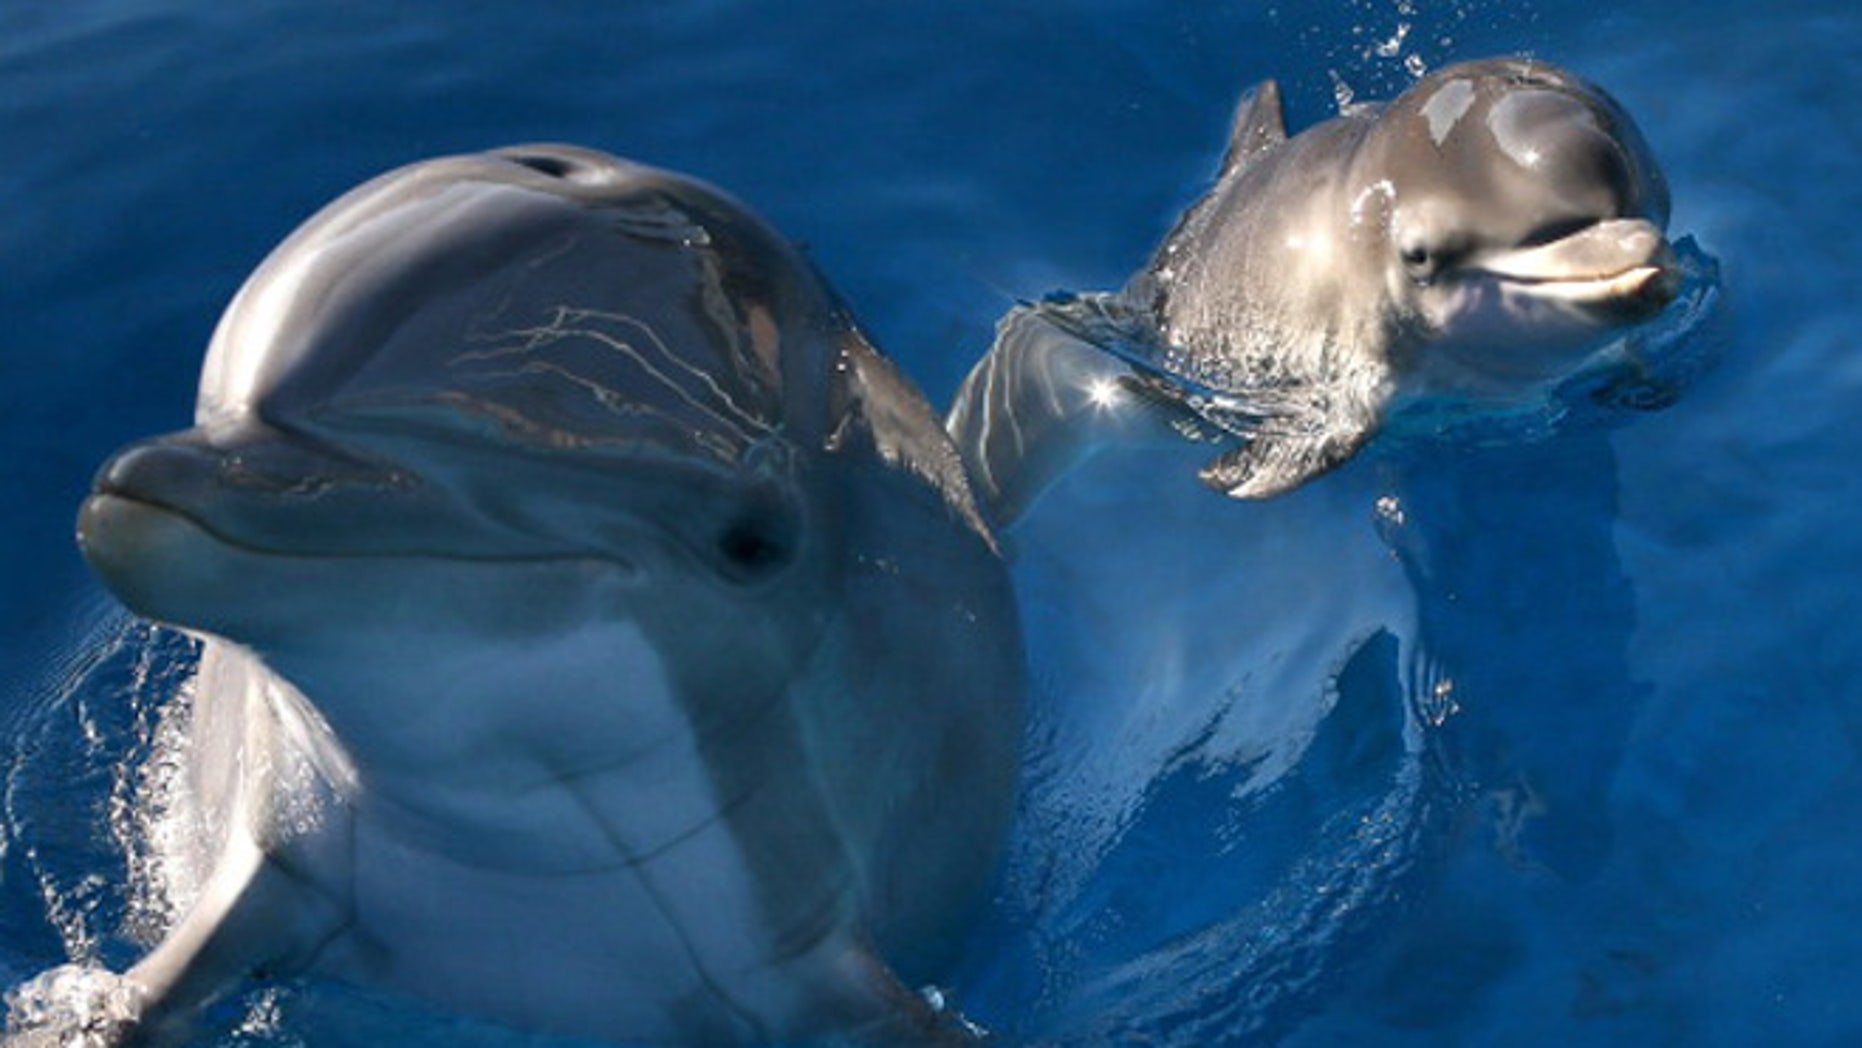 VALLEJO, CA - JANUARY 17:  Bella, a Bottlenose Dolphin, swims in a pool with her new calf named Mirabella at Six Flags Discovery Kingdom on January 17, 2014 in Vallejo, California.  Bella, a nine year-old Bottlenose Dolphin, gave birth to her first calf on January 9, 2014 at Six Flags Discovery Kingdom.  (Photo by Justin Sullivan/Getty Images)